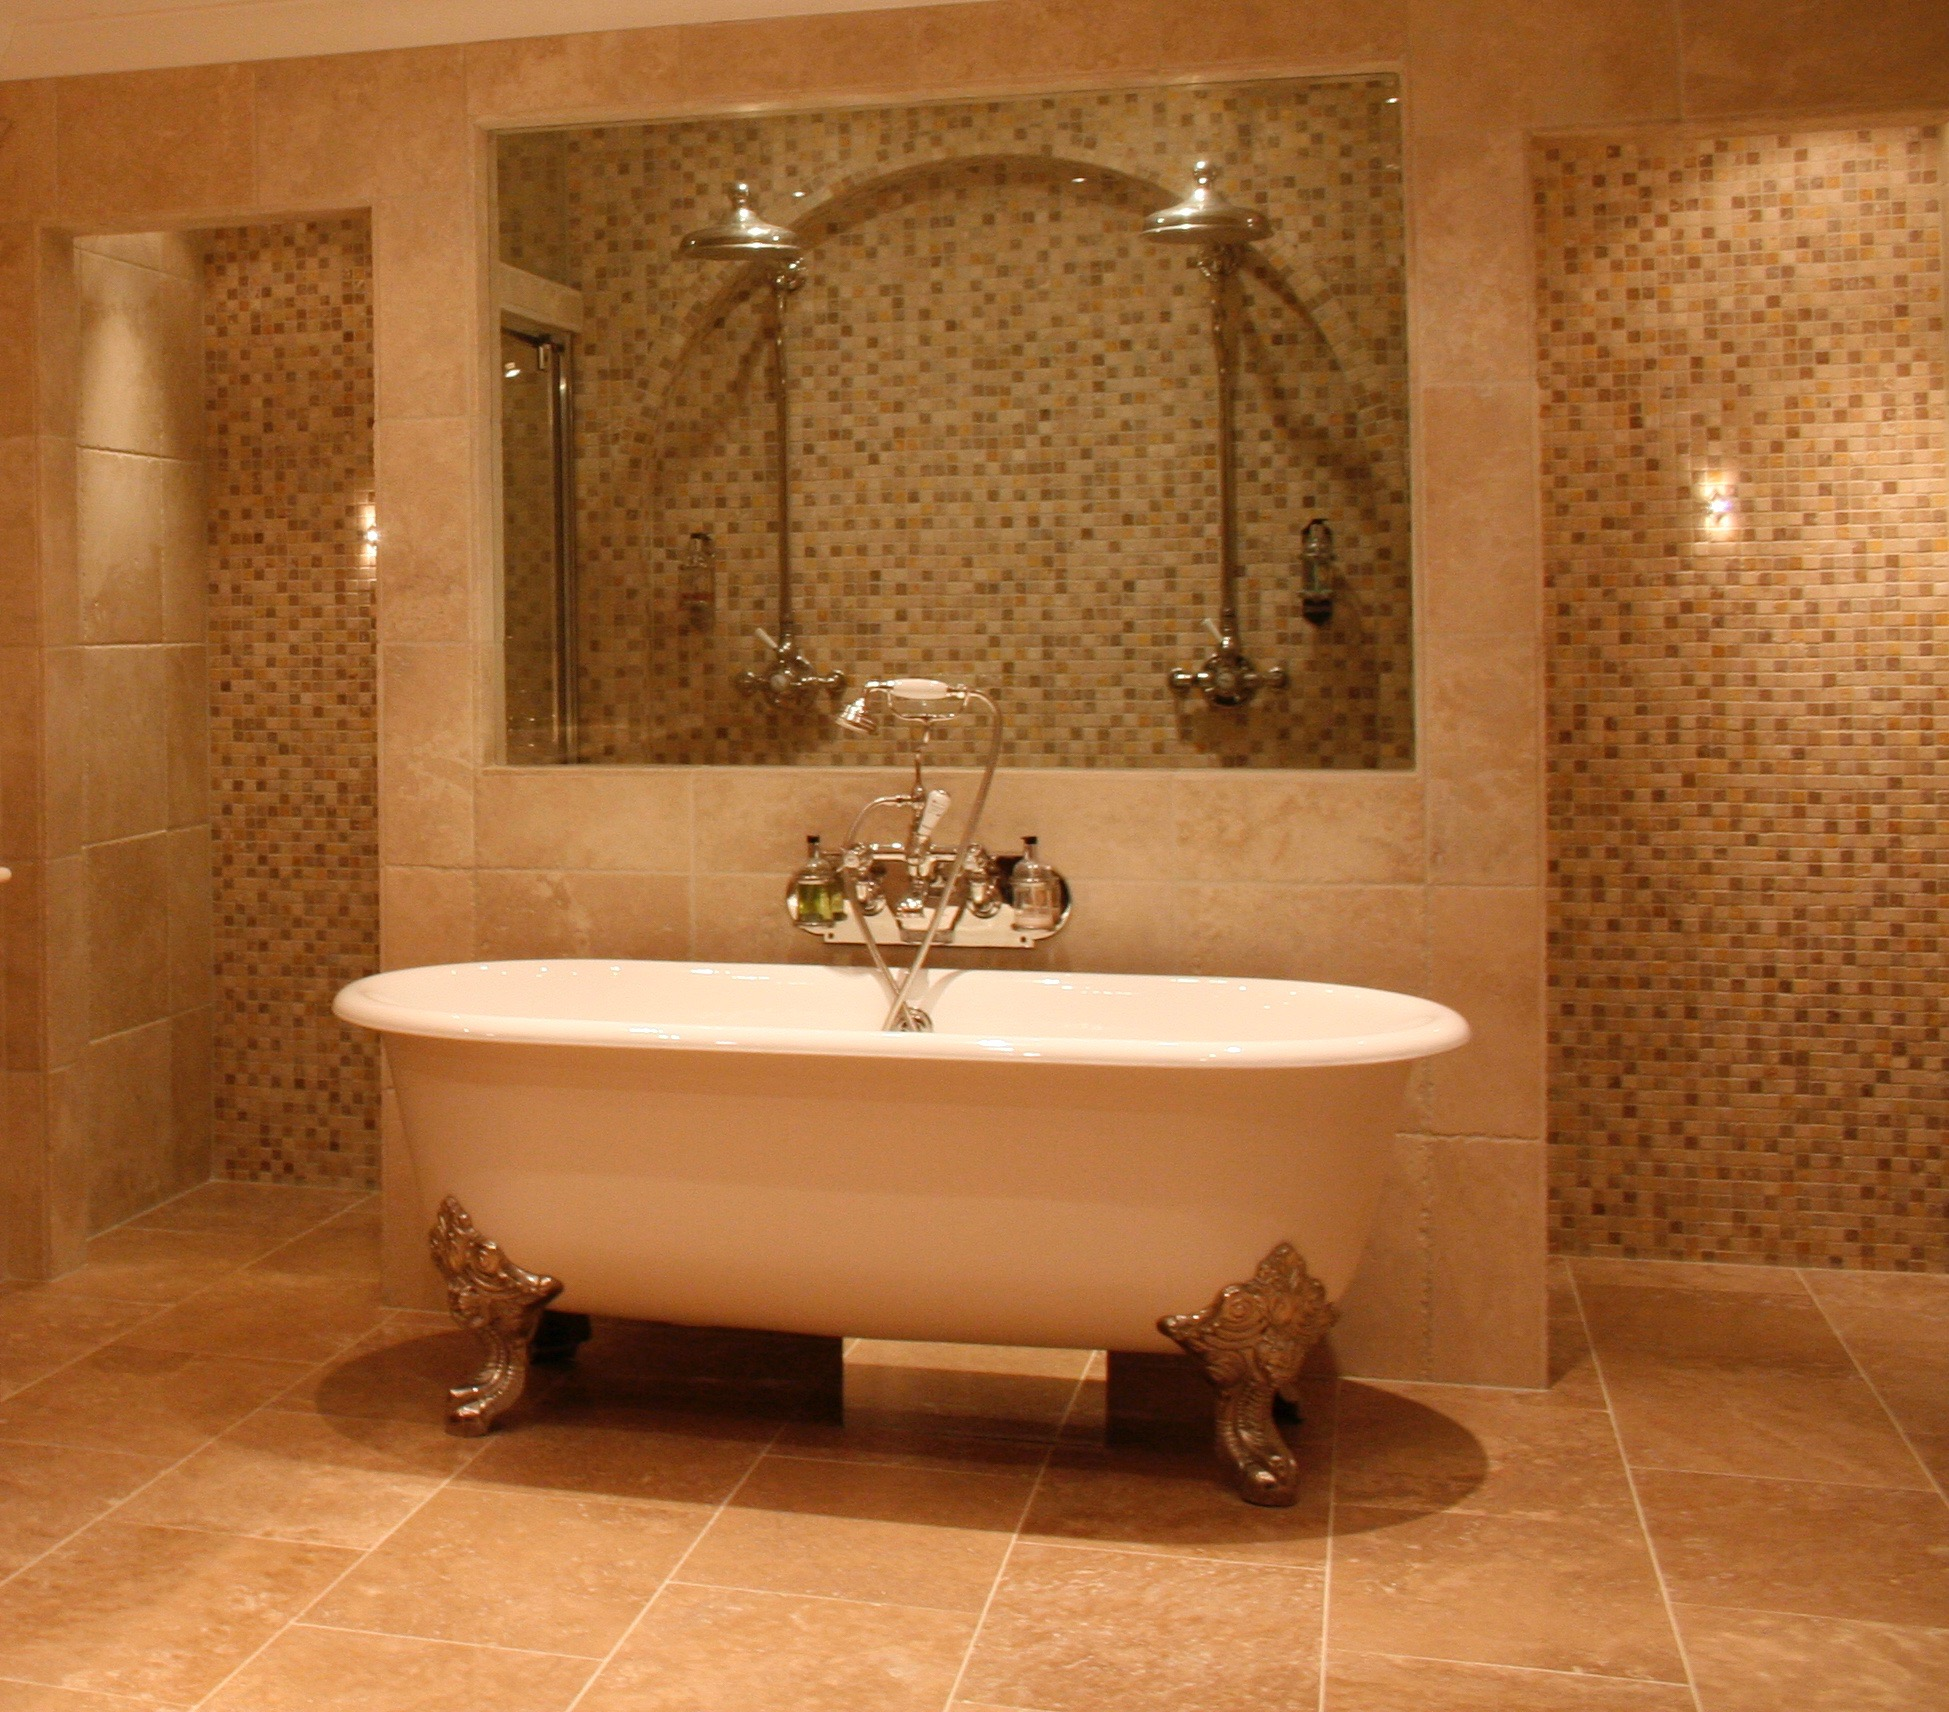 freestanding tub traditional style bath shower room